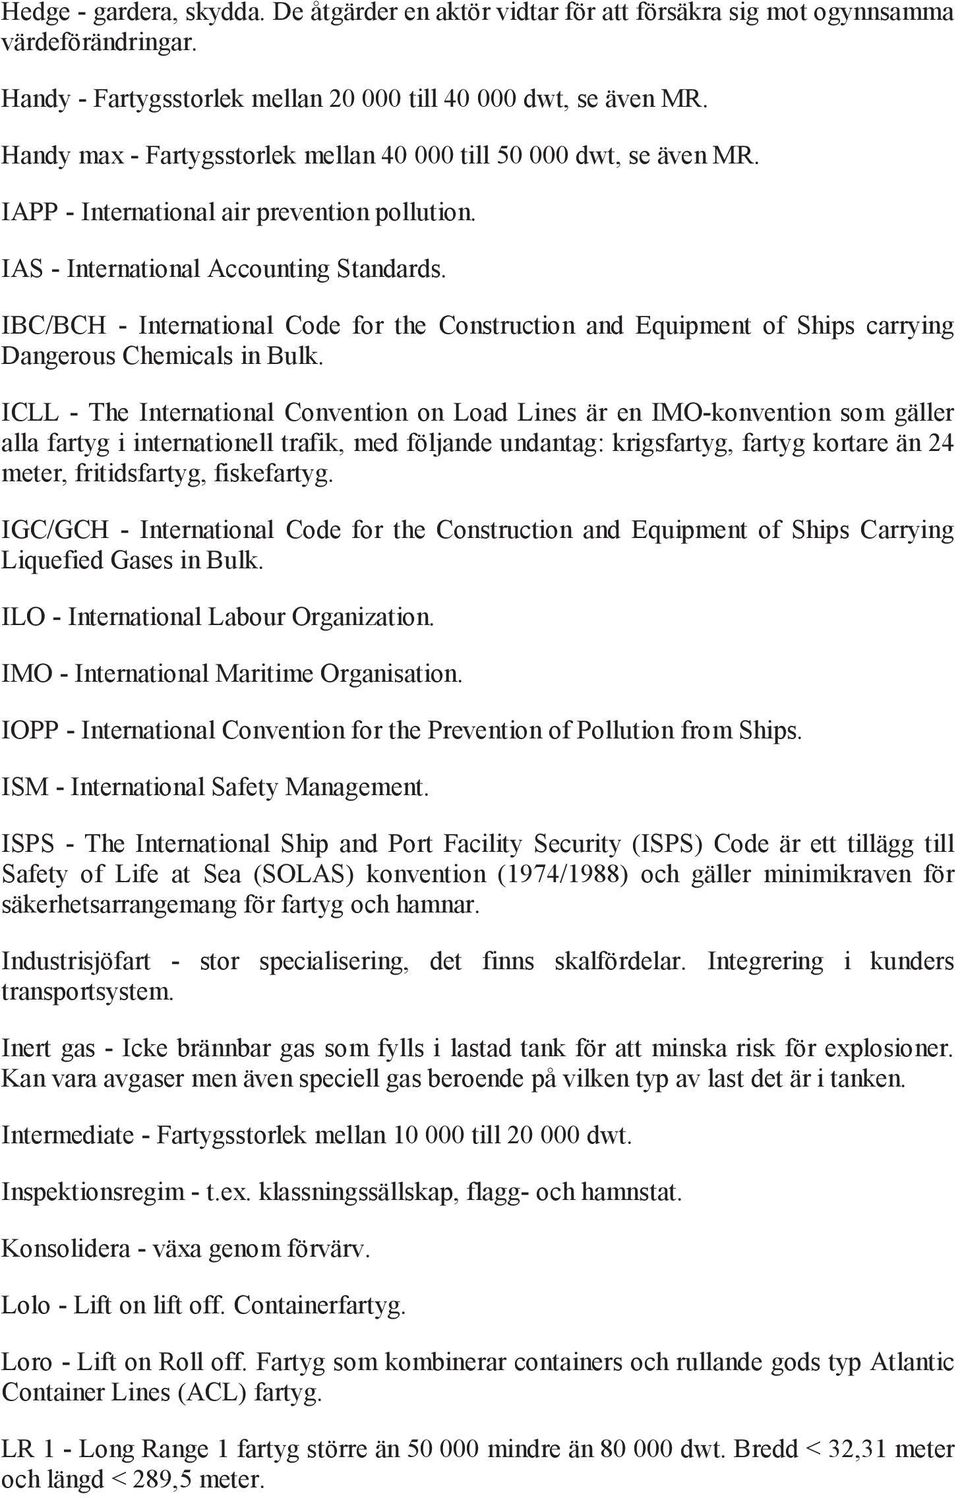 IBC/BCH - International Code for the Construction and Equipment of Ships carrying Dangerous Chemicals in Bulk.